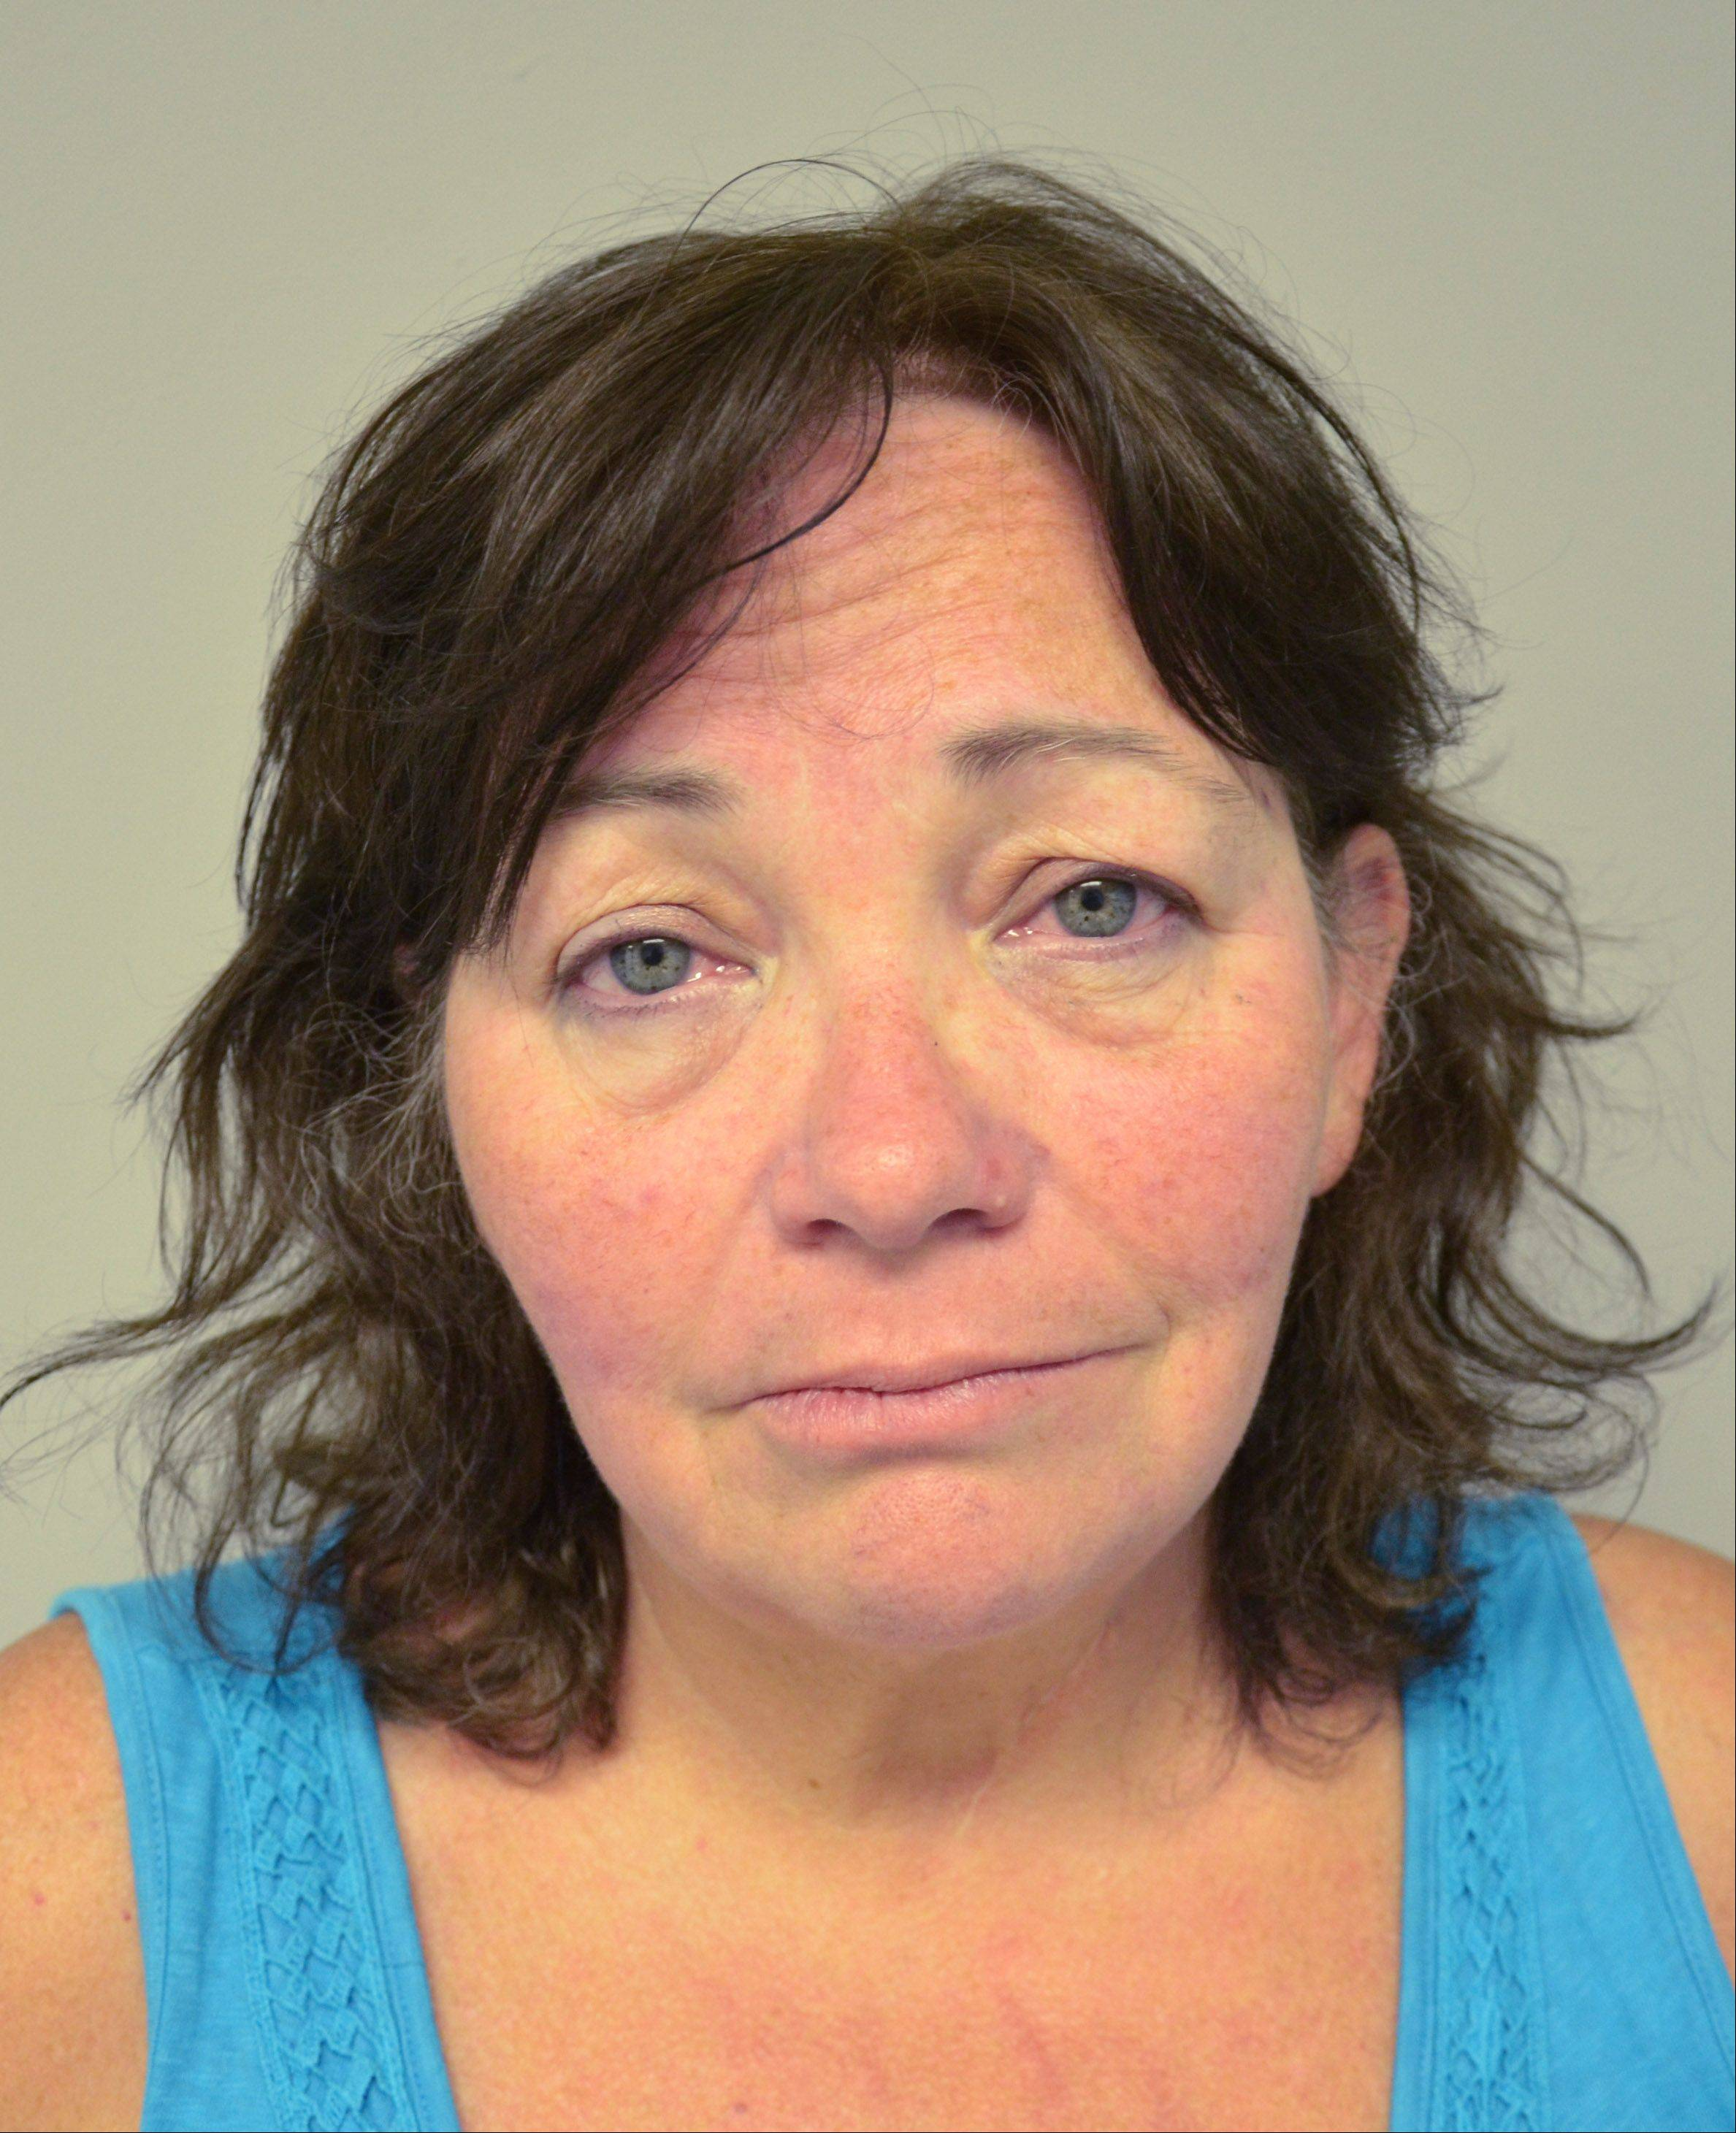 Karen Paxton, 55, of Round Lake Park, who was arrested Aug. 7 and charged with hosting an underage drinking party. She is multiple counts of unlawfully permitting a minor to become intoxicated.